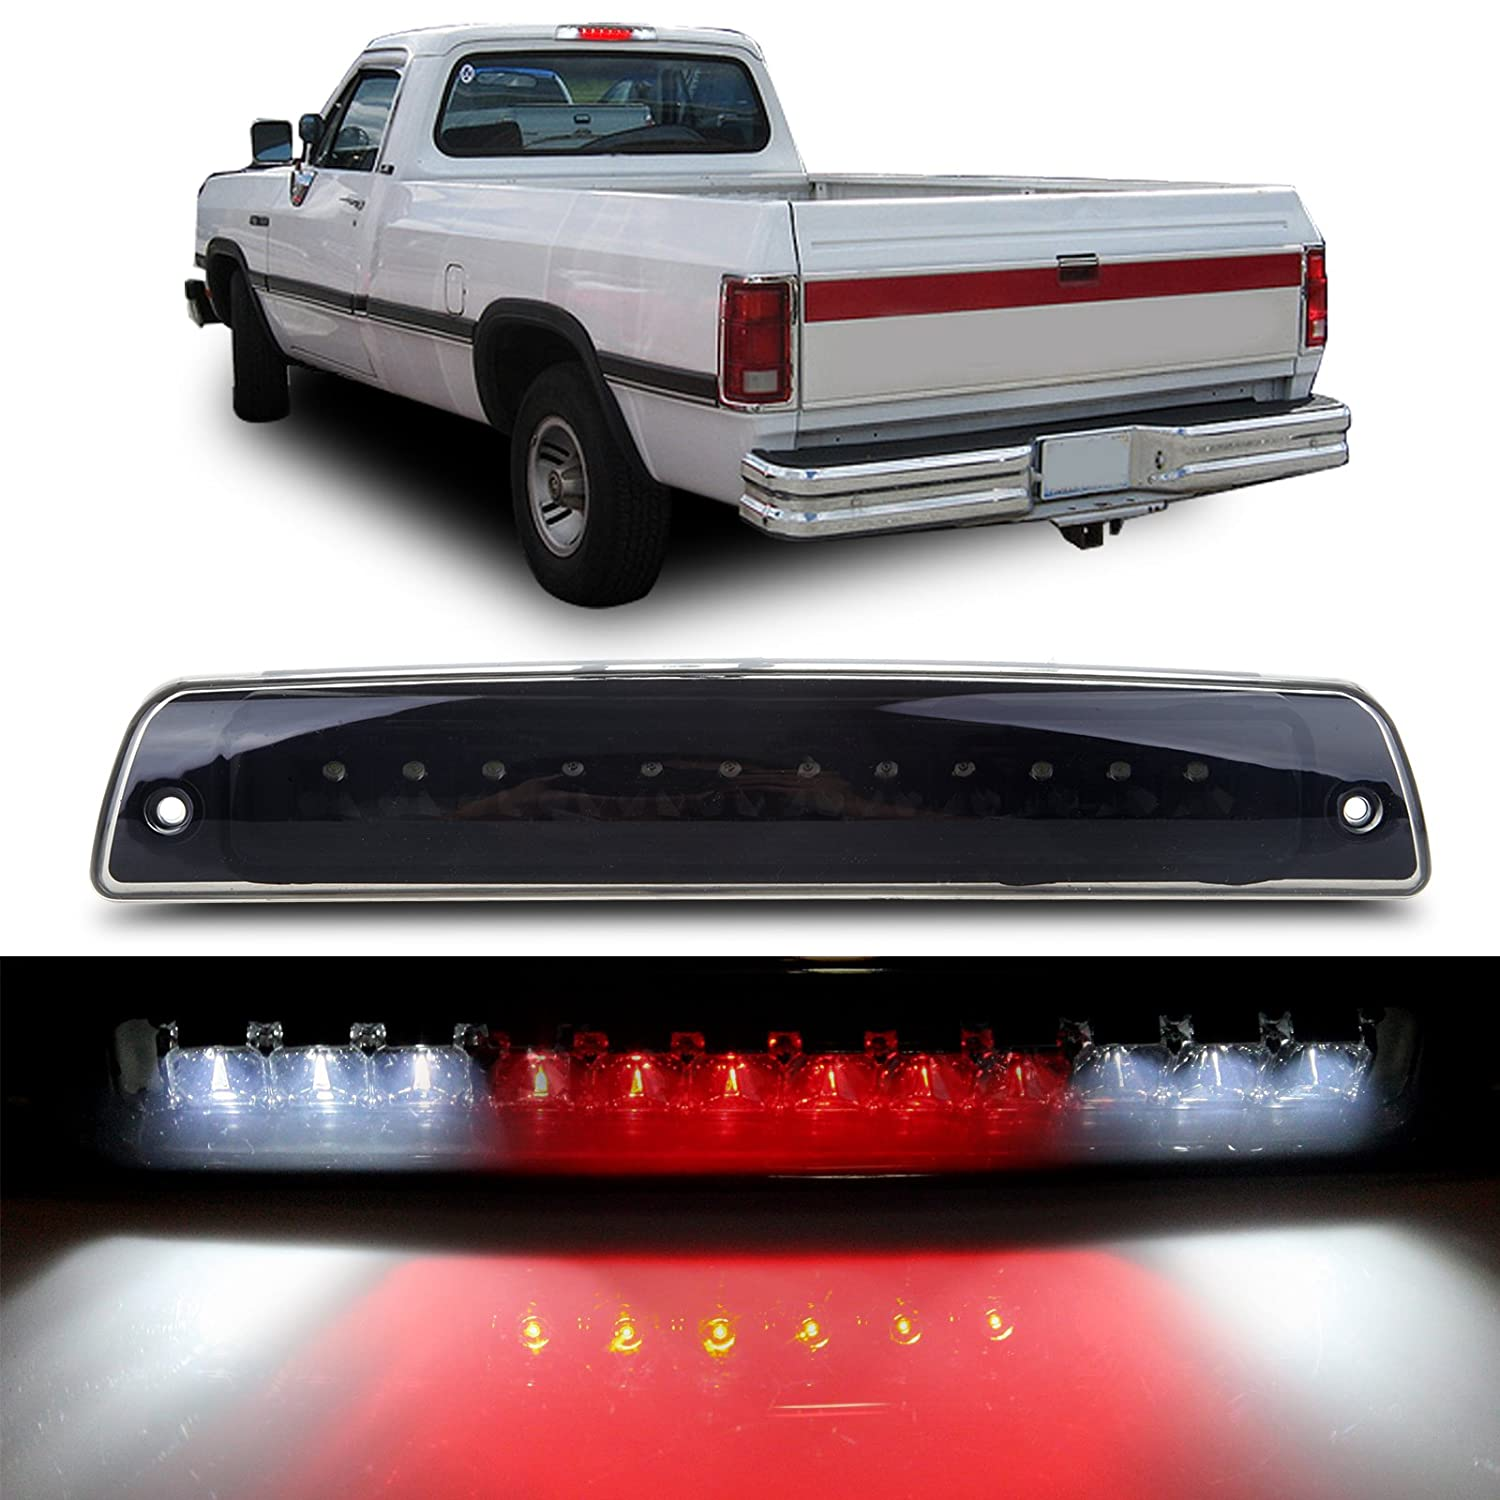 cciyu High Mount Brake Light Replacement fit for 1994-2001 Dodge Ram 1500 2500 3500 Pickup LED 3rd Brake Light Cargo Lamp (Smoke) 121903-5210-1659481